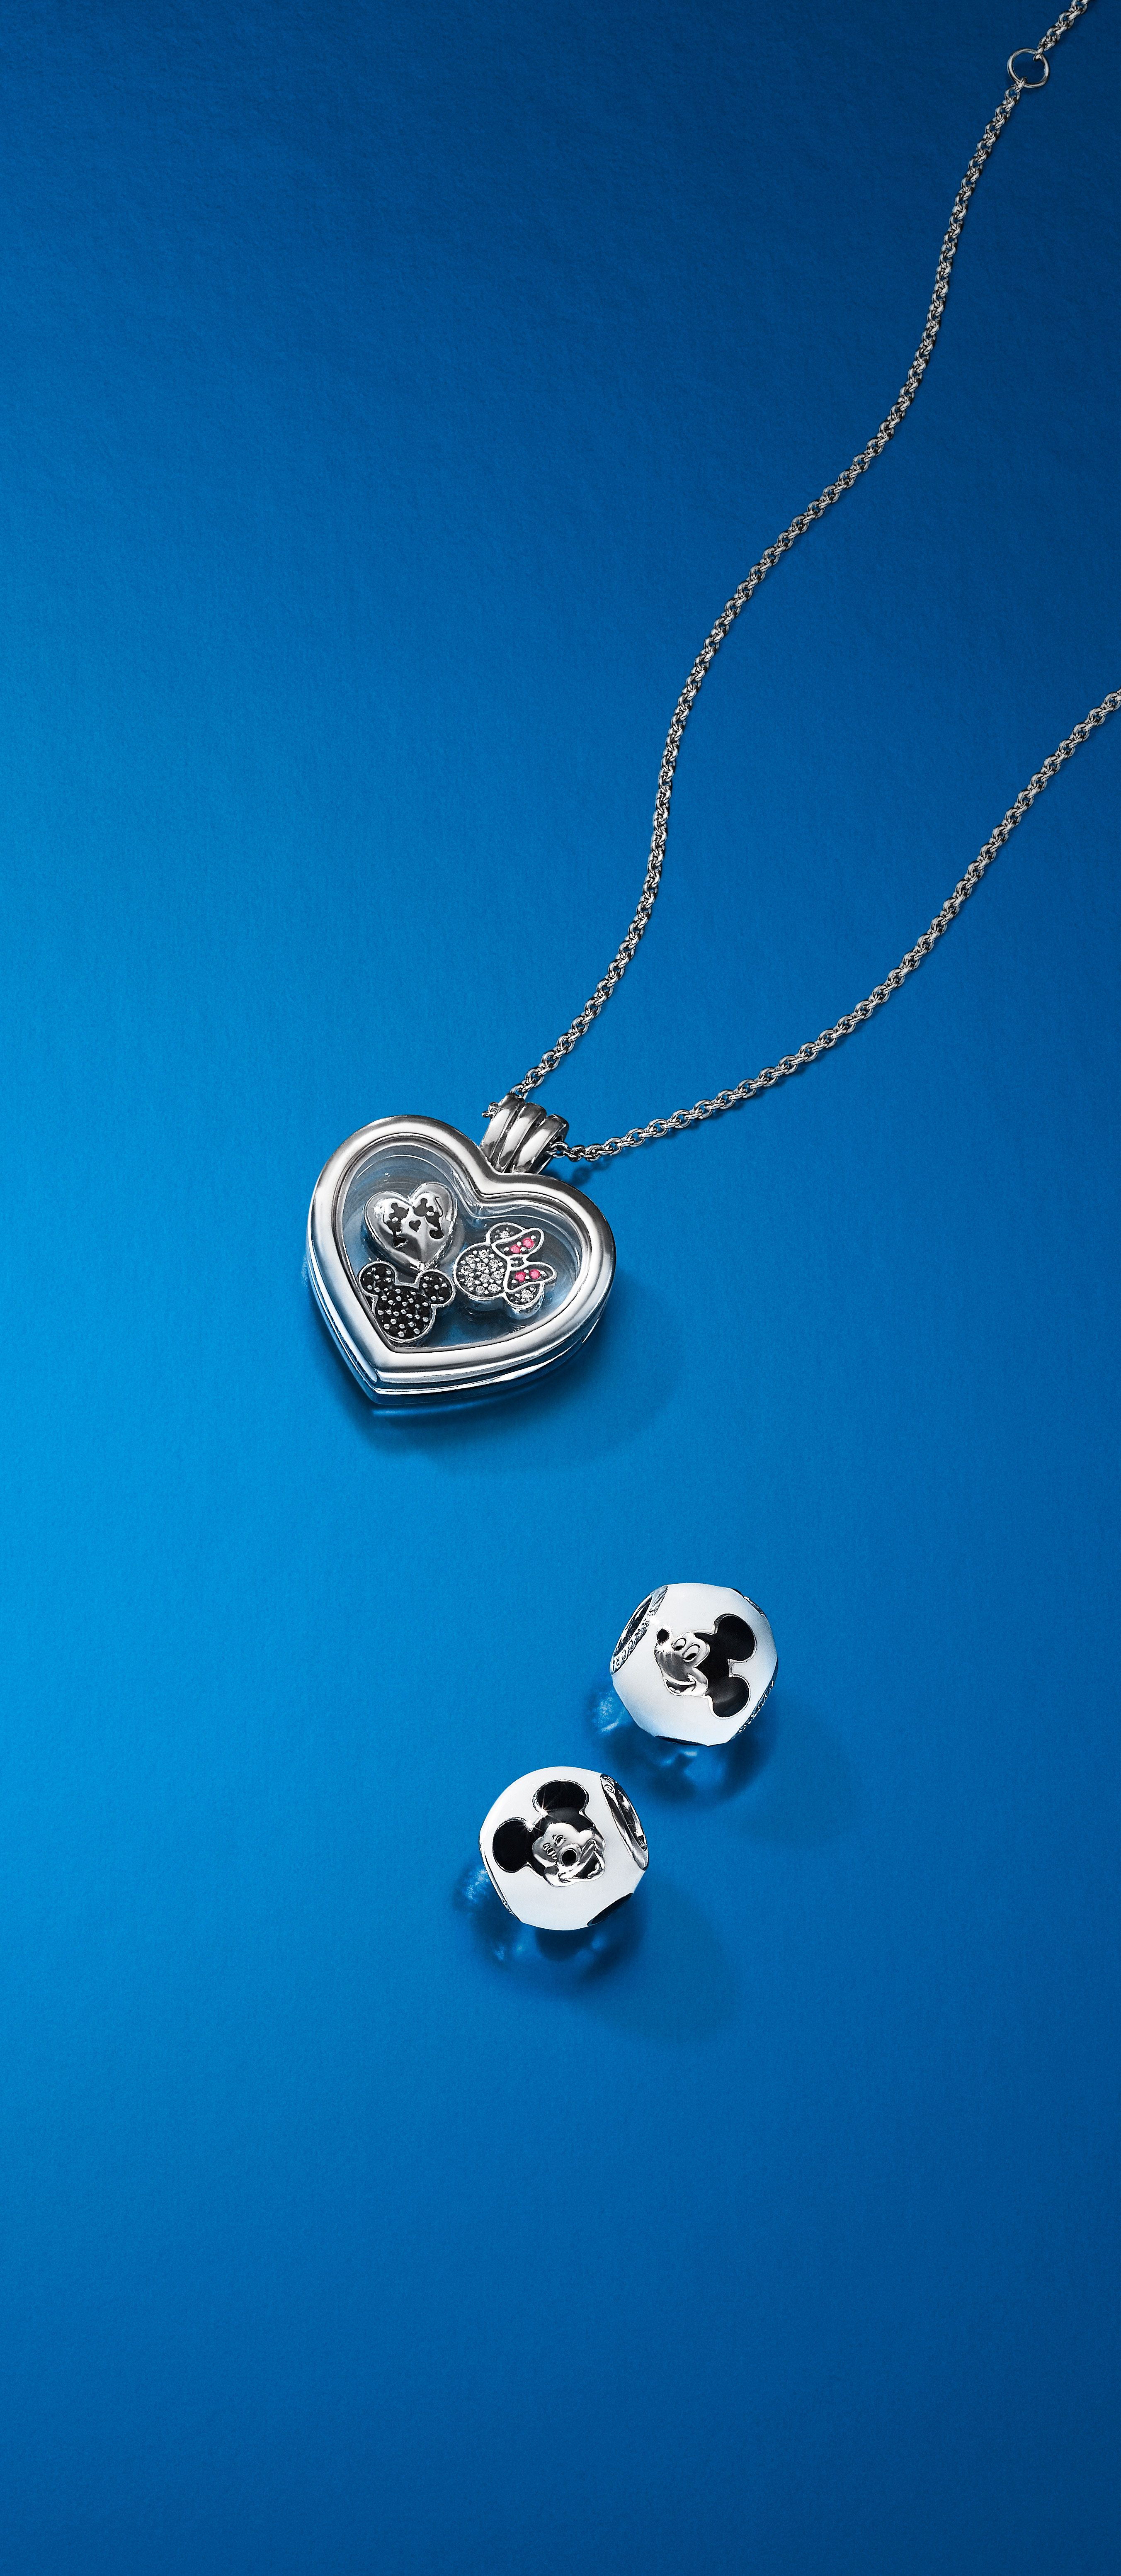 2018 Silver & Gold Jewelry Collection | Disney X Pandora In 2019 Regarding Best And Newest Disney, Sparkling Minnie Icon Petite Locket Charm Necklaces (View 9 of 25)